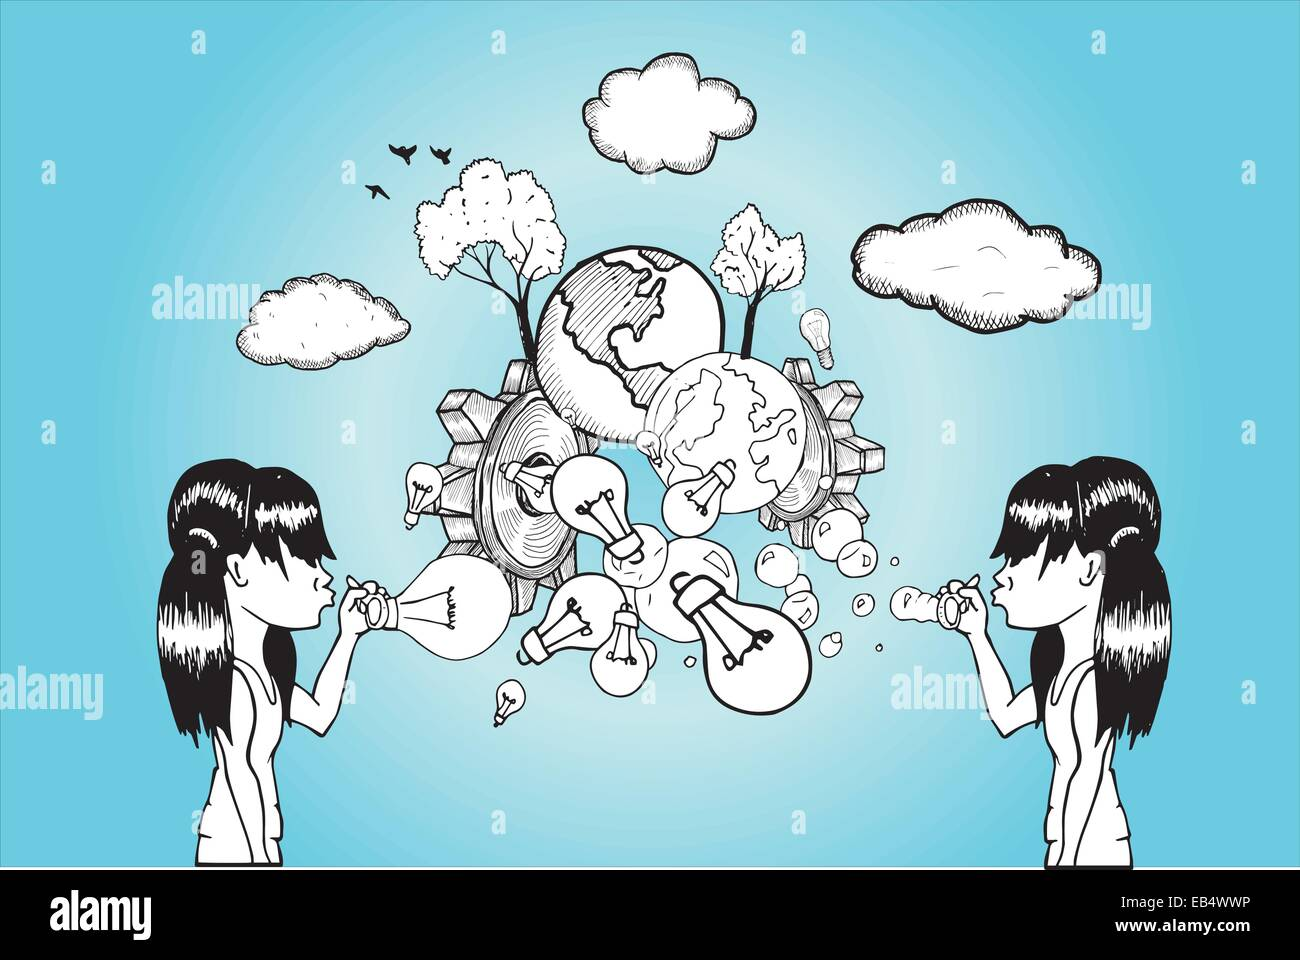 Girls blowing light bulb and earth bubbles - Stock Vector